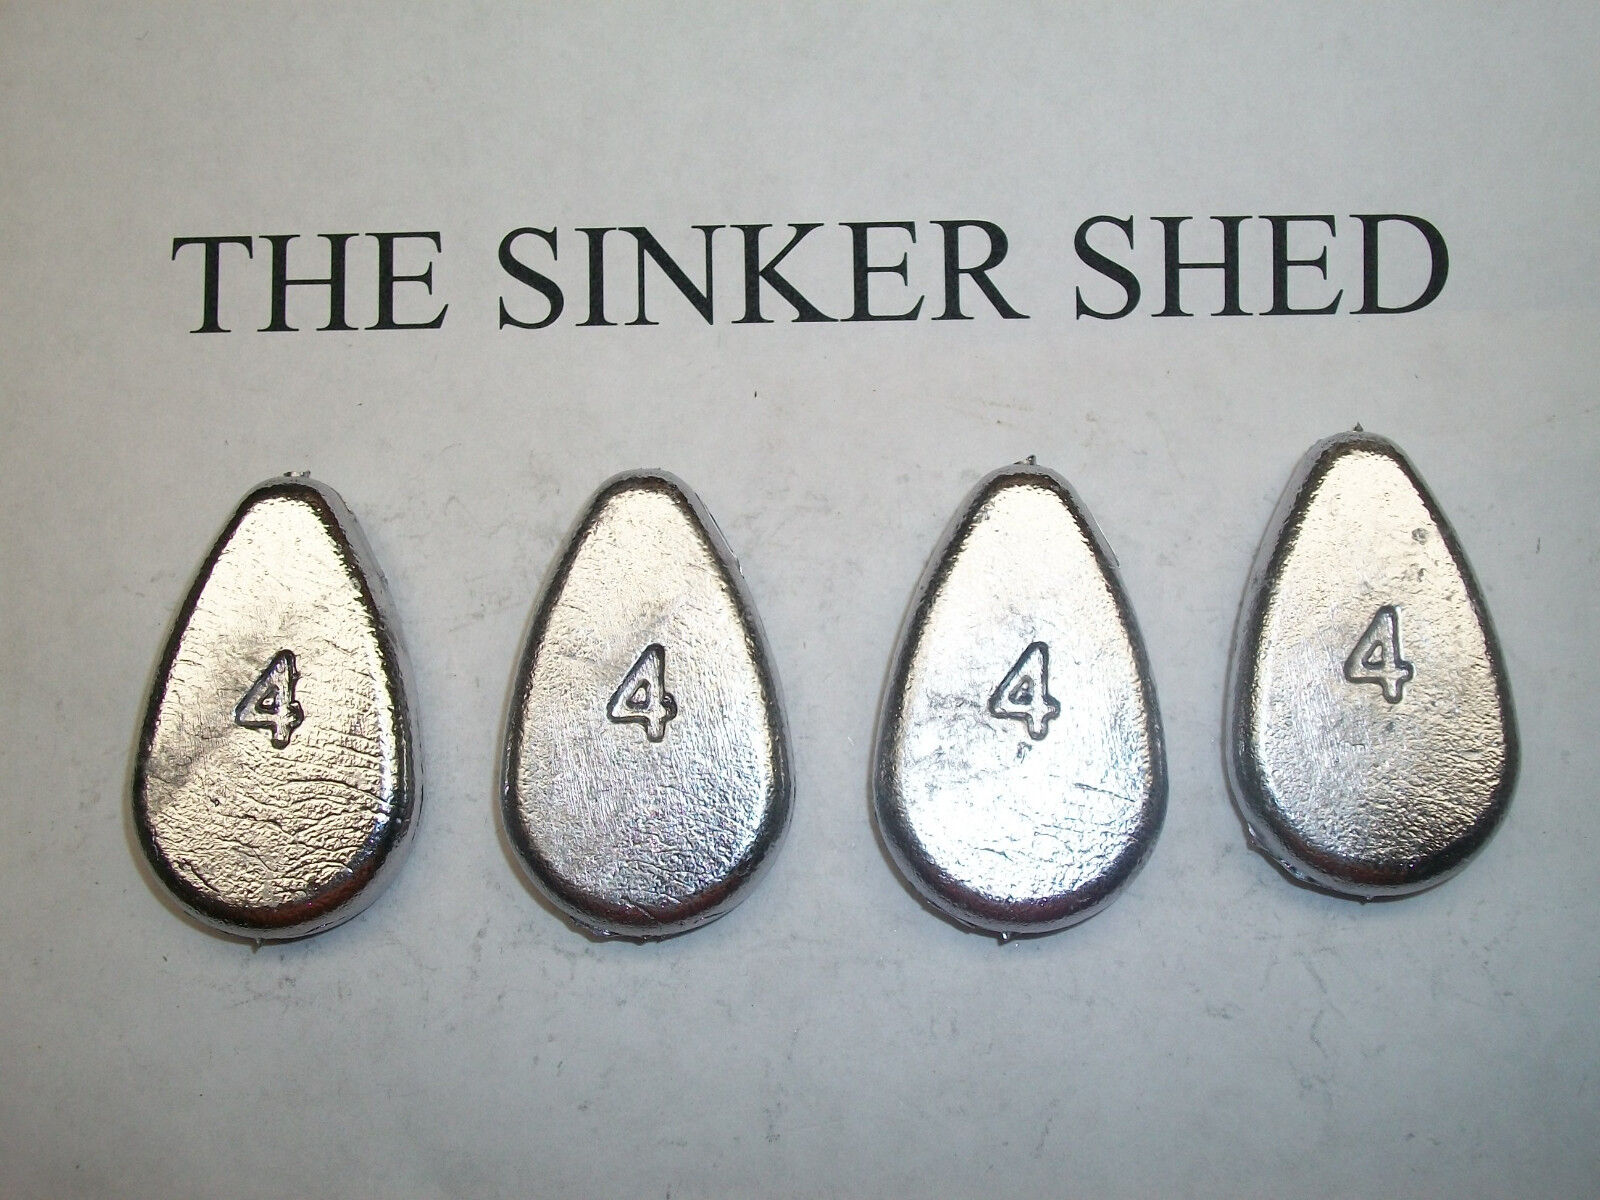 4 oz no roll slip sinkers  - quantity of 6 12 25 50 100 250 - FREE SHIPPING